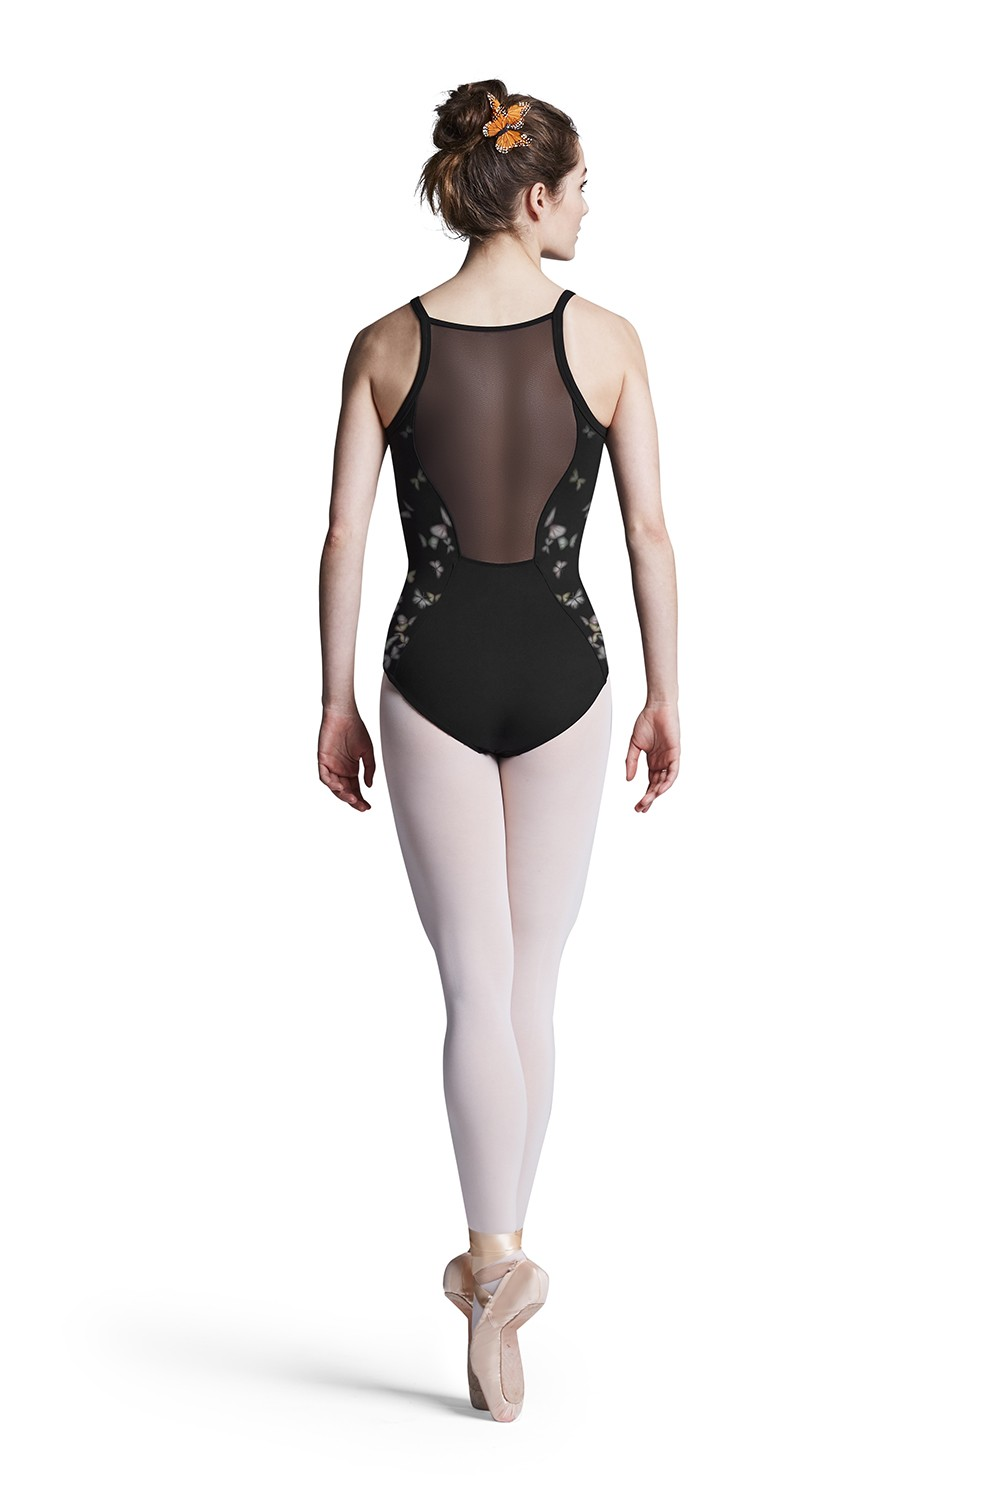 Delaney Women's Dance Leotards